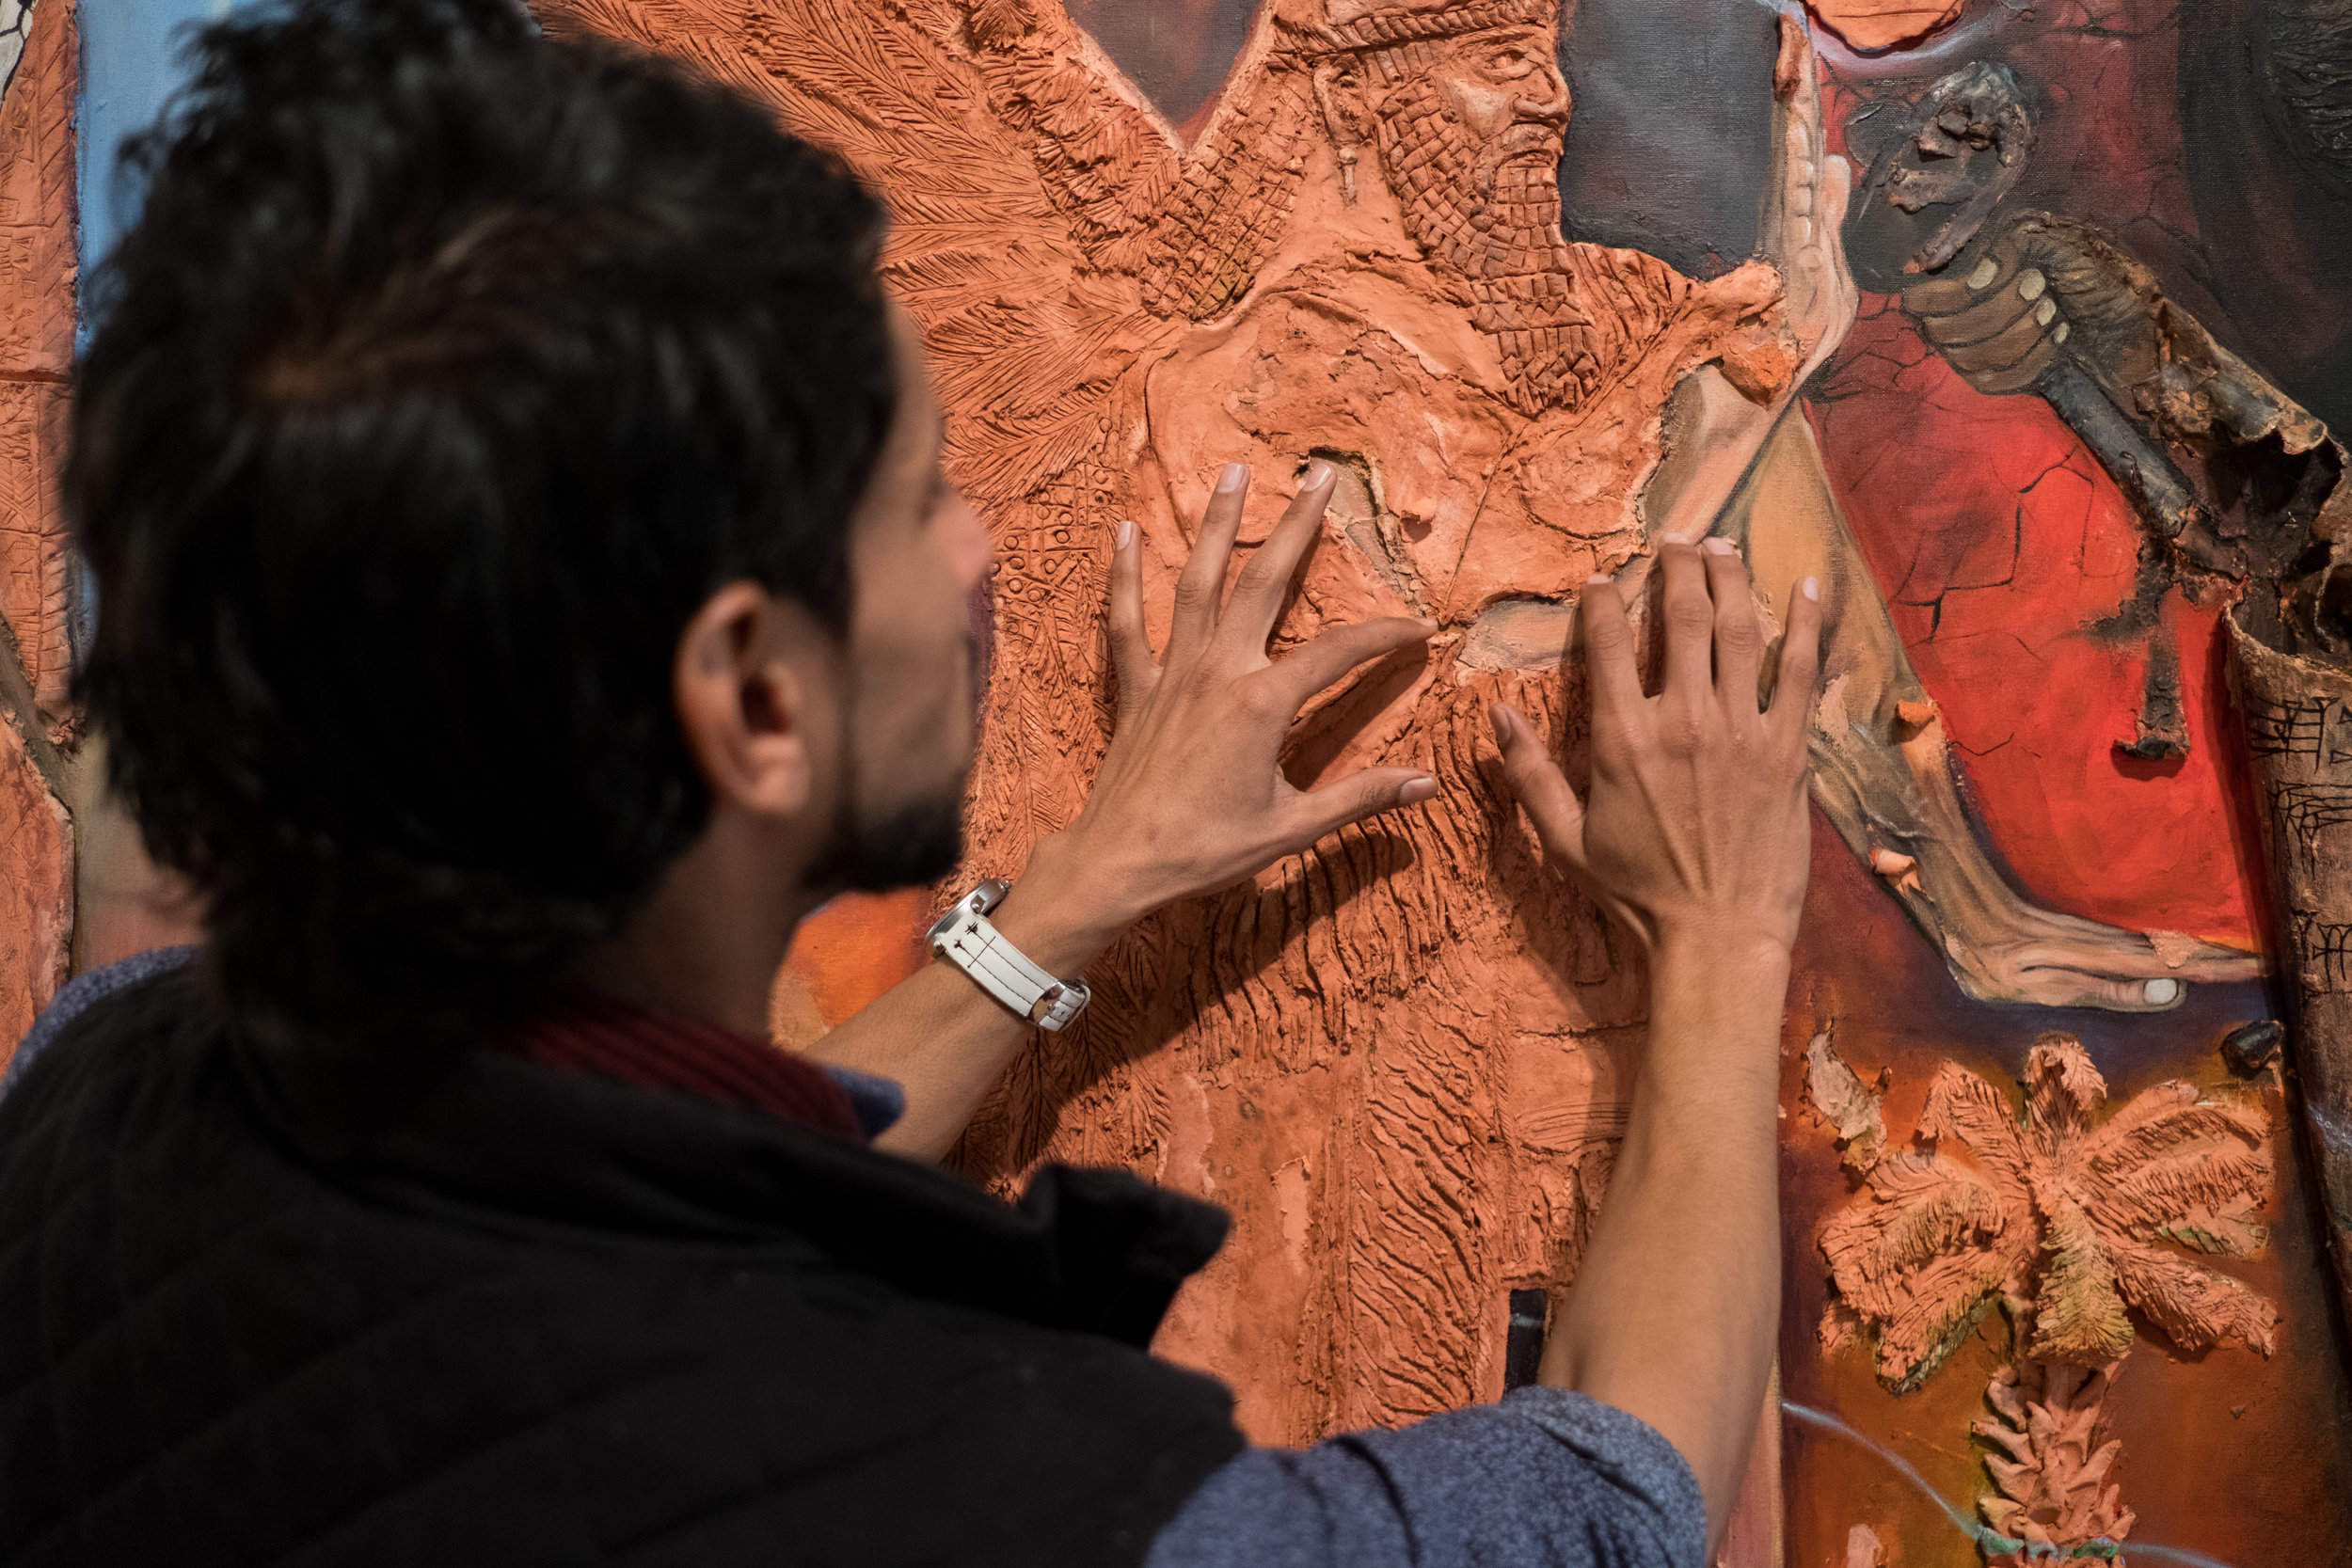 Mohanad intimately details the meaning behind his work